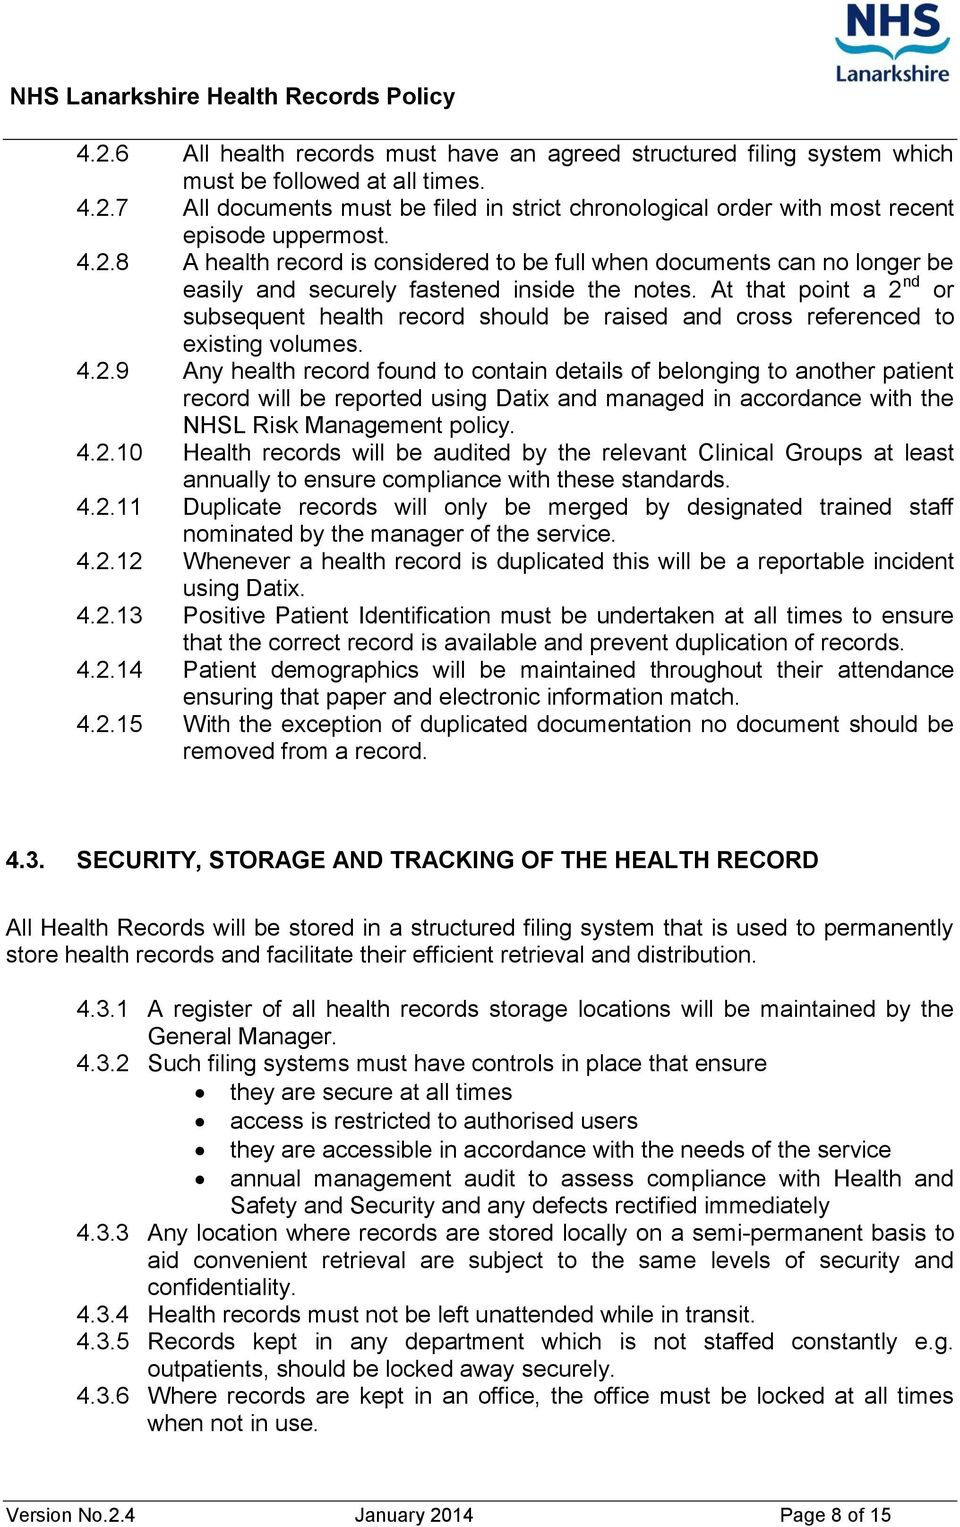 At that point a 2 nd or subsequent health record should be raised and cross referenced to existing volumes. 4.2.9 Any health record found to contain details of belonging to another patient record will be reported using Datix and managed in accordance with the NHSL Risk Management policy.